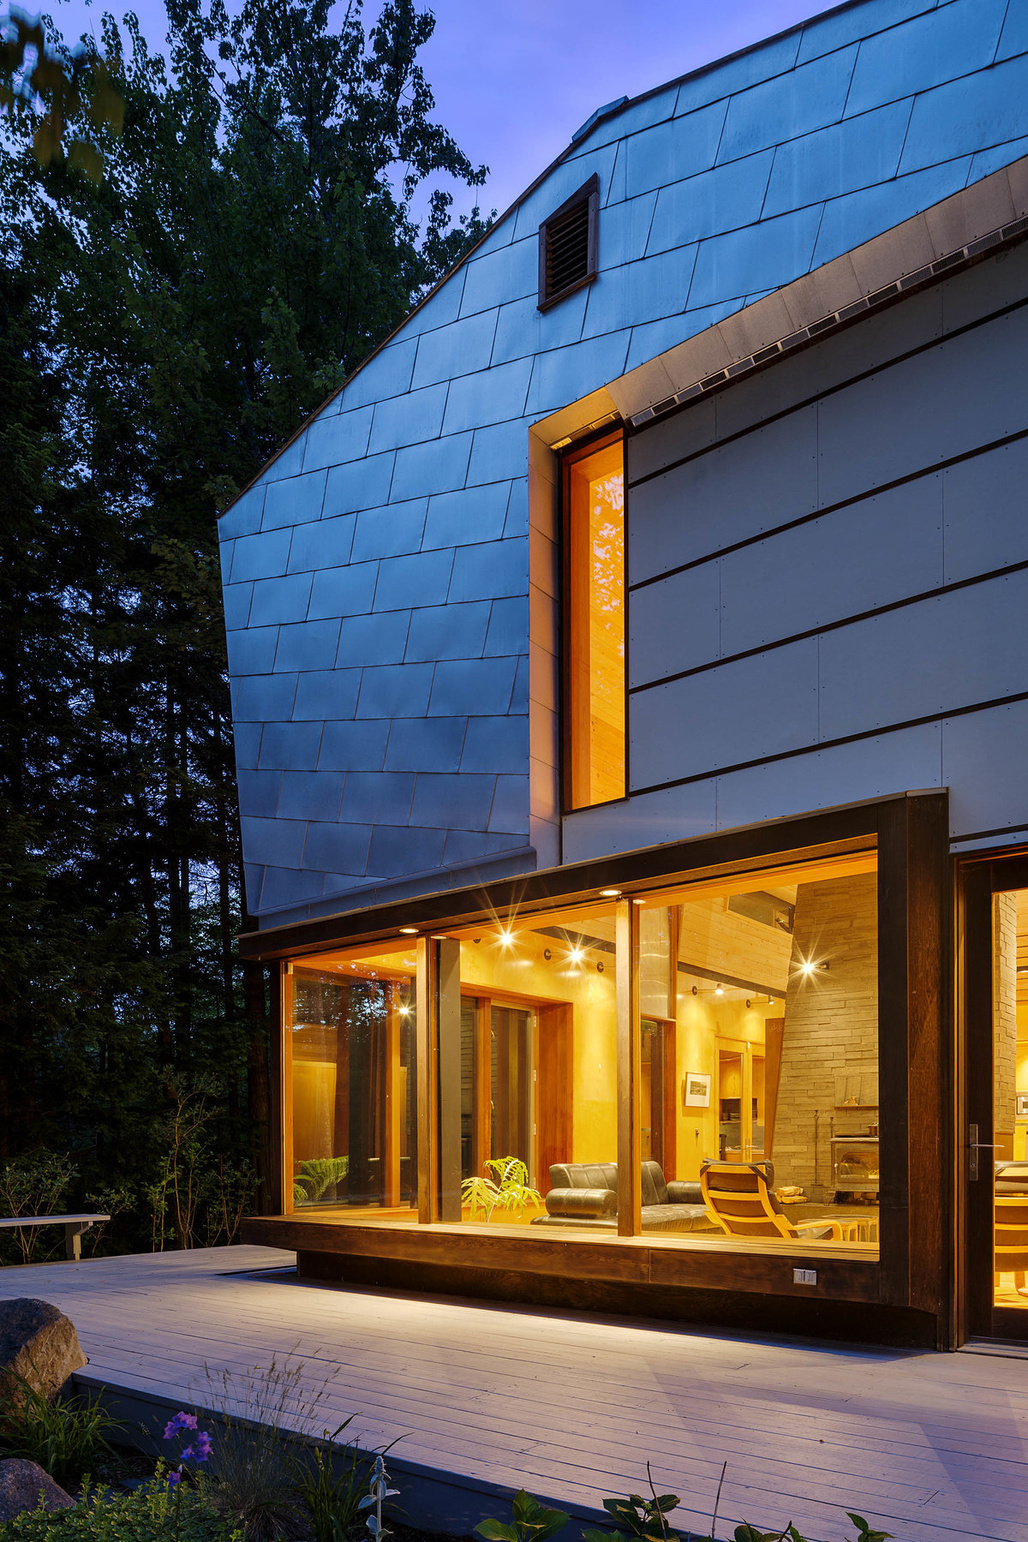 "<a href=""http://archinect.com/intersticearchitects/project/mountain-house"">MOUNTAIN:house</a> in Barlett, NH by <a href=""http://archinect.com/intersticearchitects"">INTERSTICE Architects</a>; Photo: Greg Pemru"